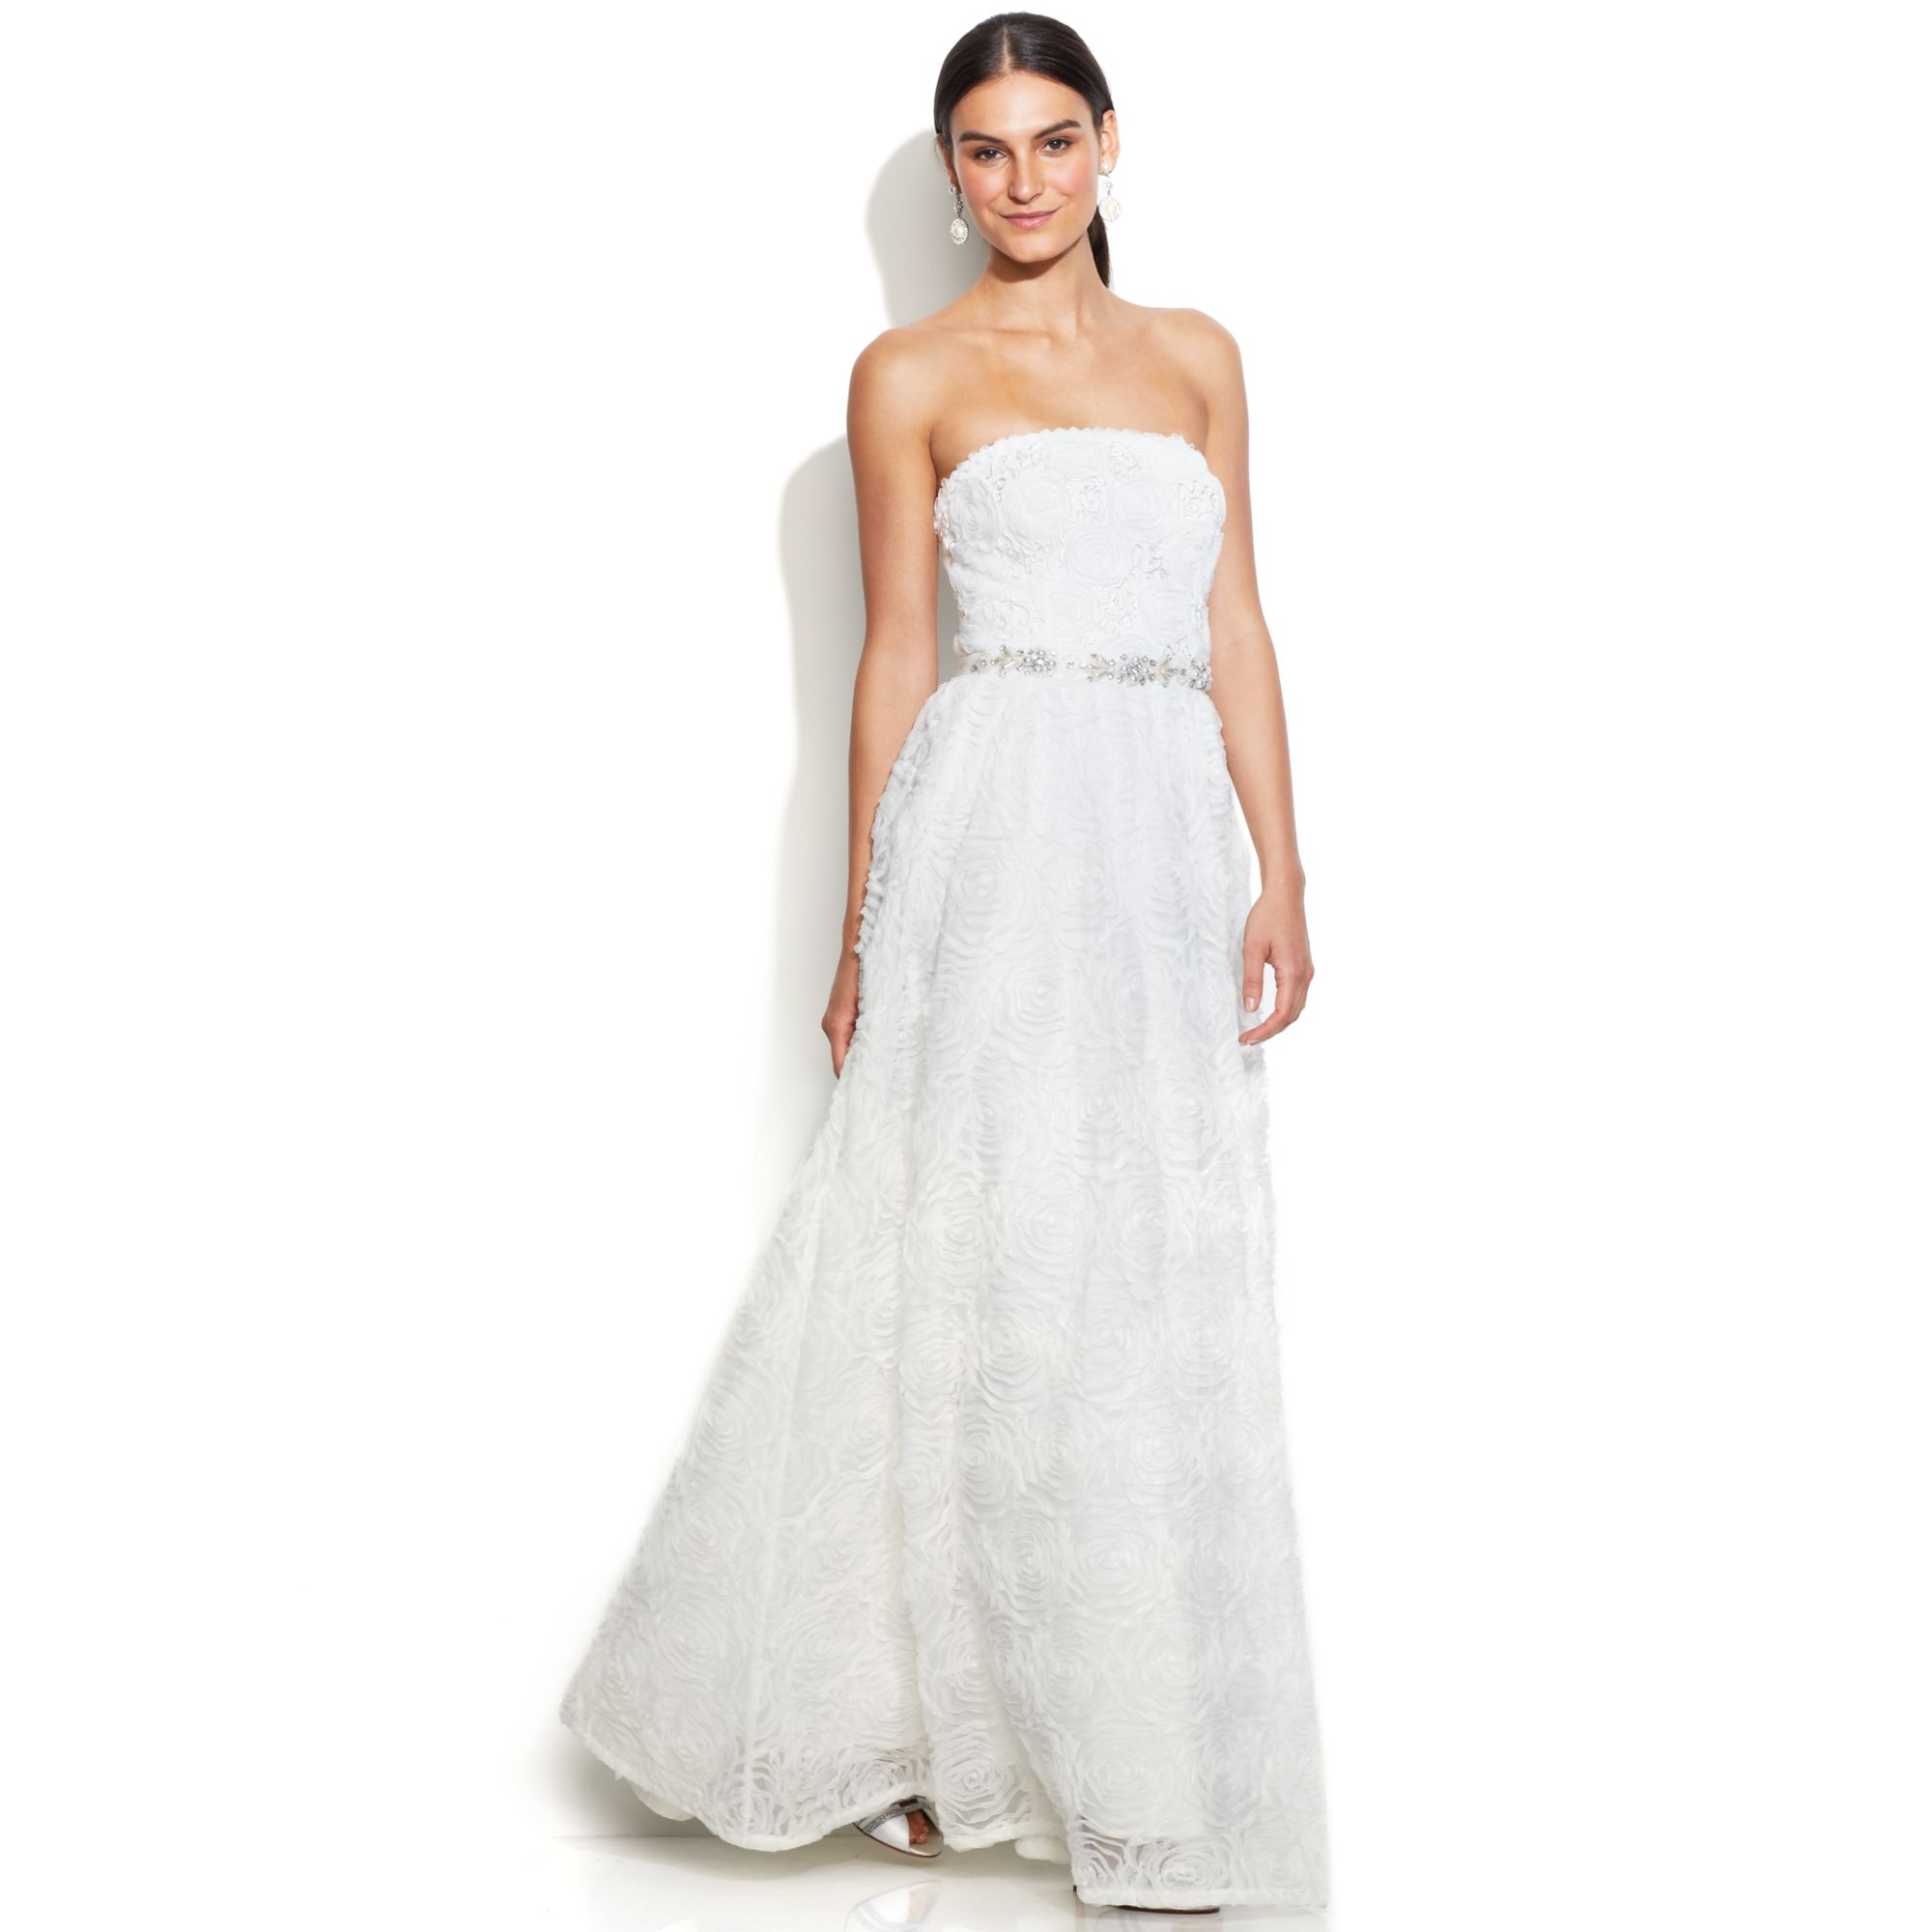 Lyst - Adrianna Papell Strapless Beaded Ball Gown in White